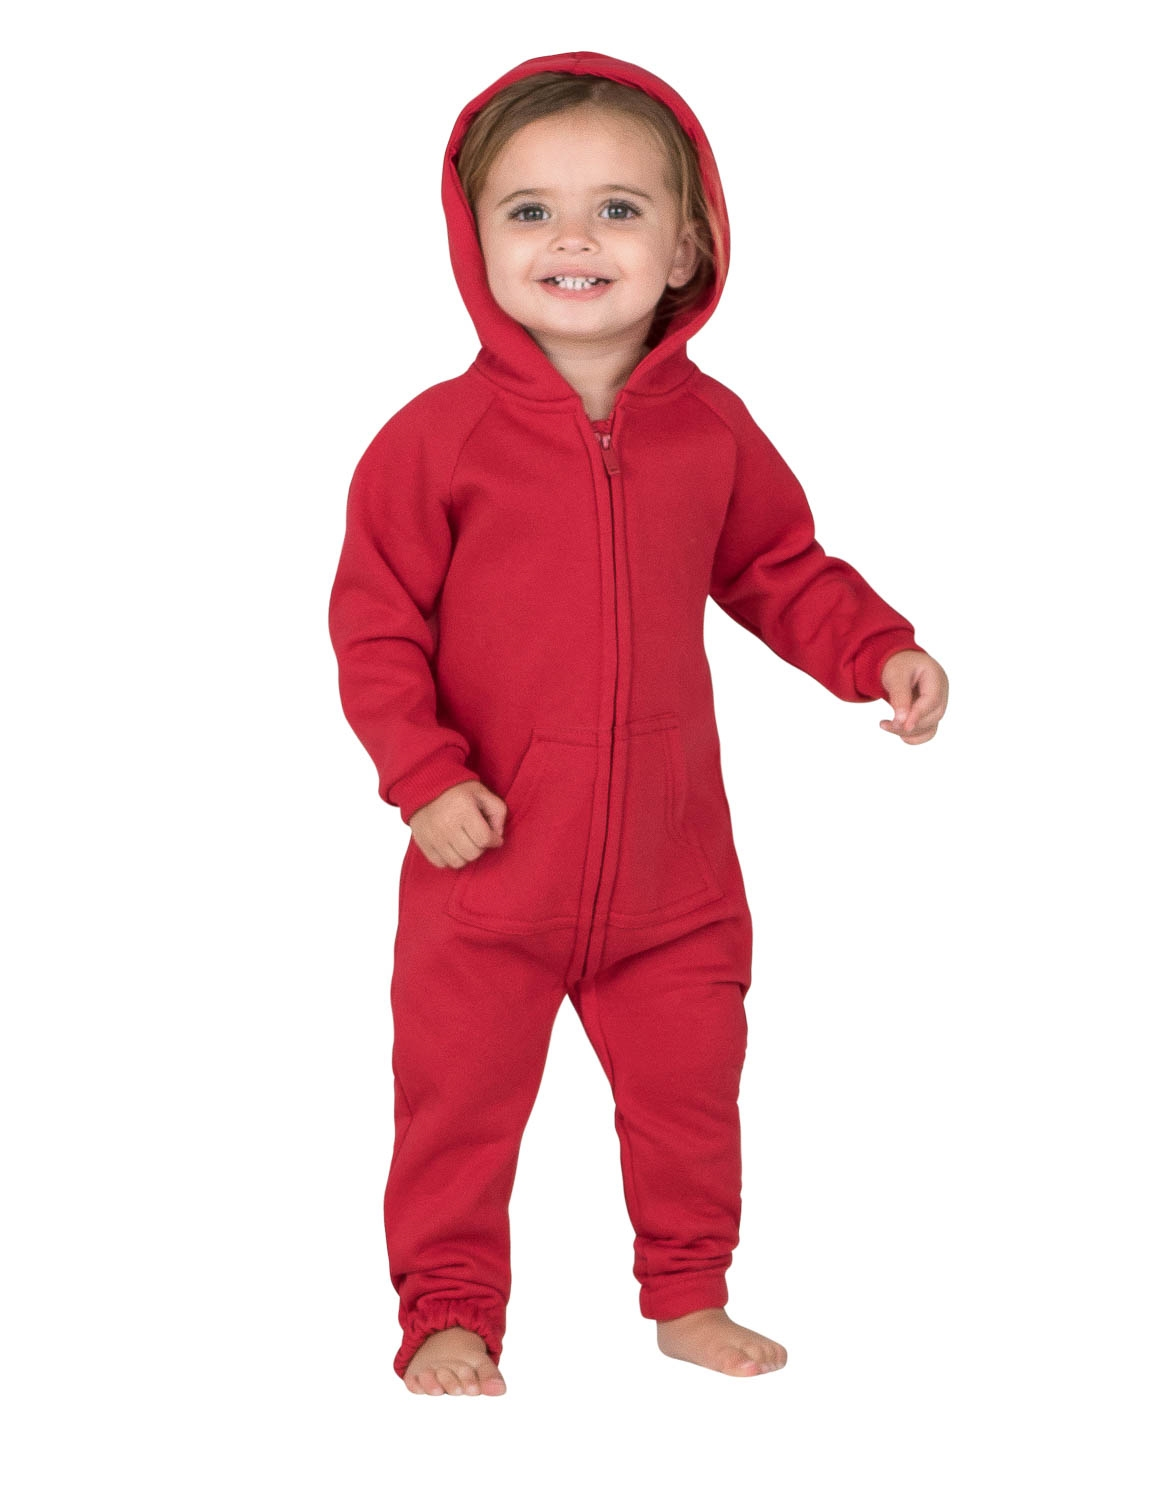 245f2b4c8 Footed Pajamas Red Infant Footless Hoodie One Piece Large on PopScreen